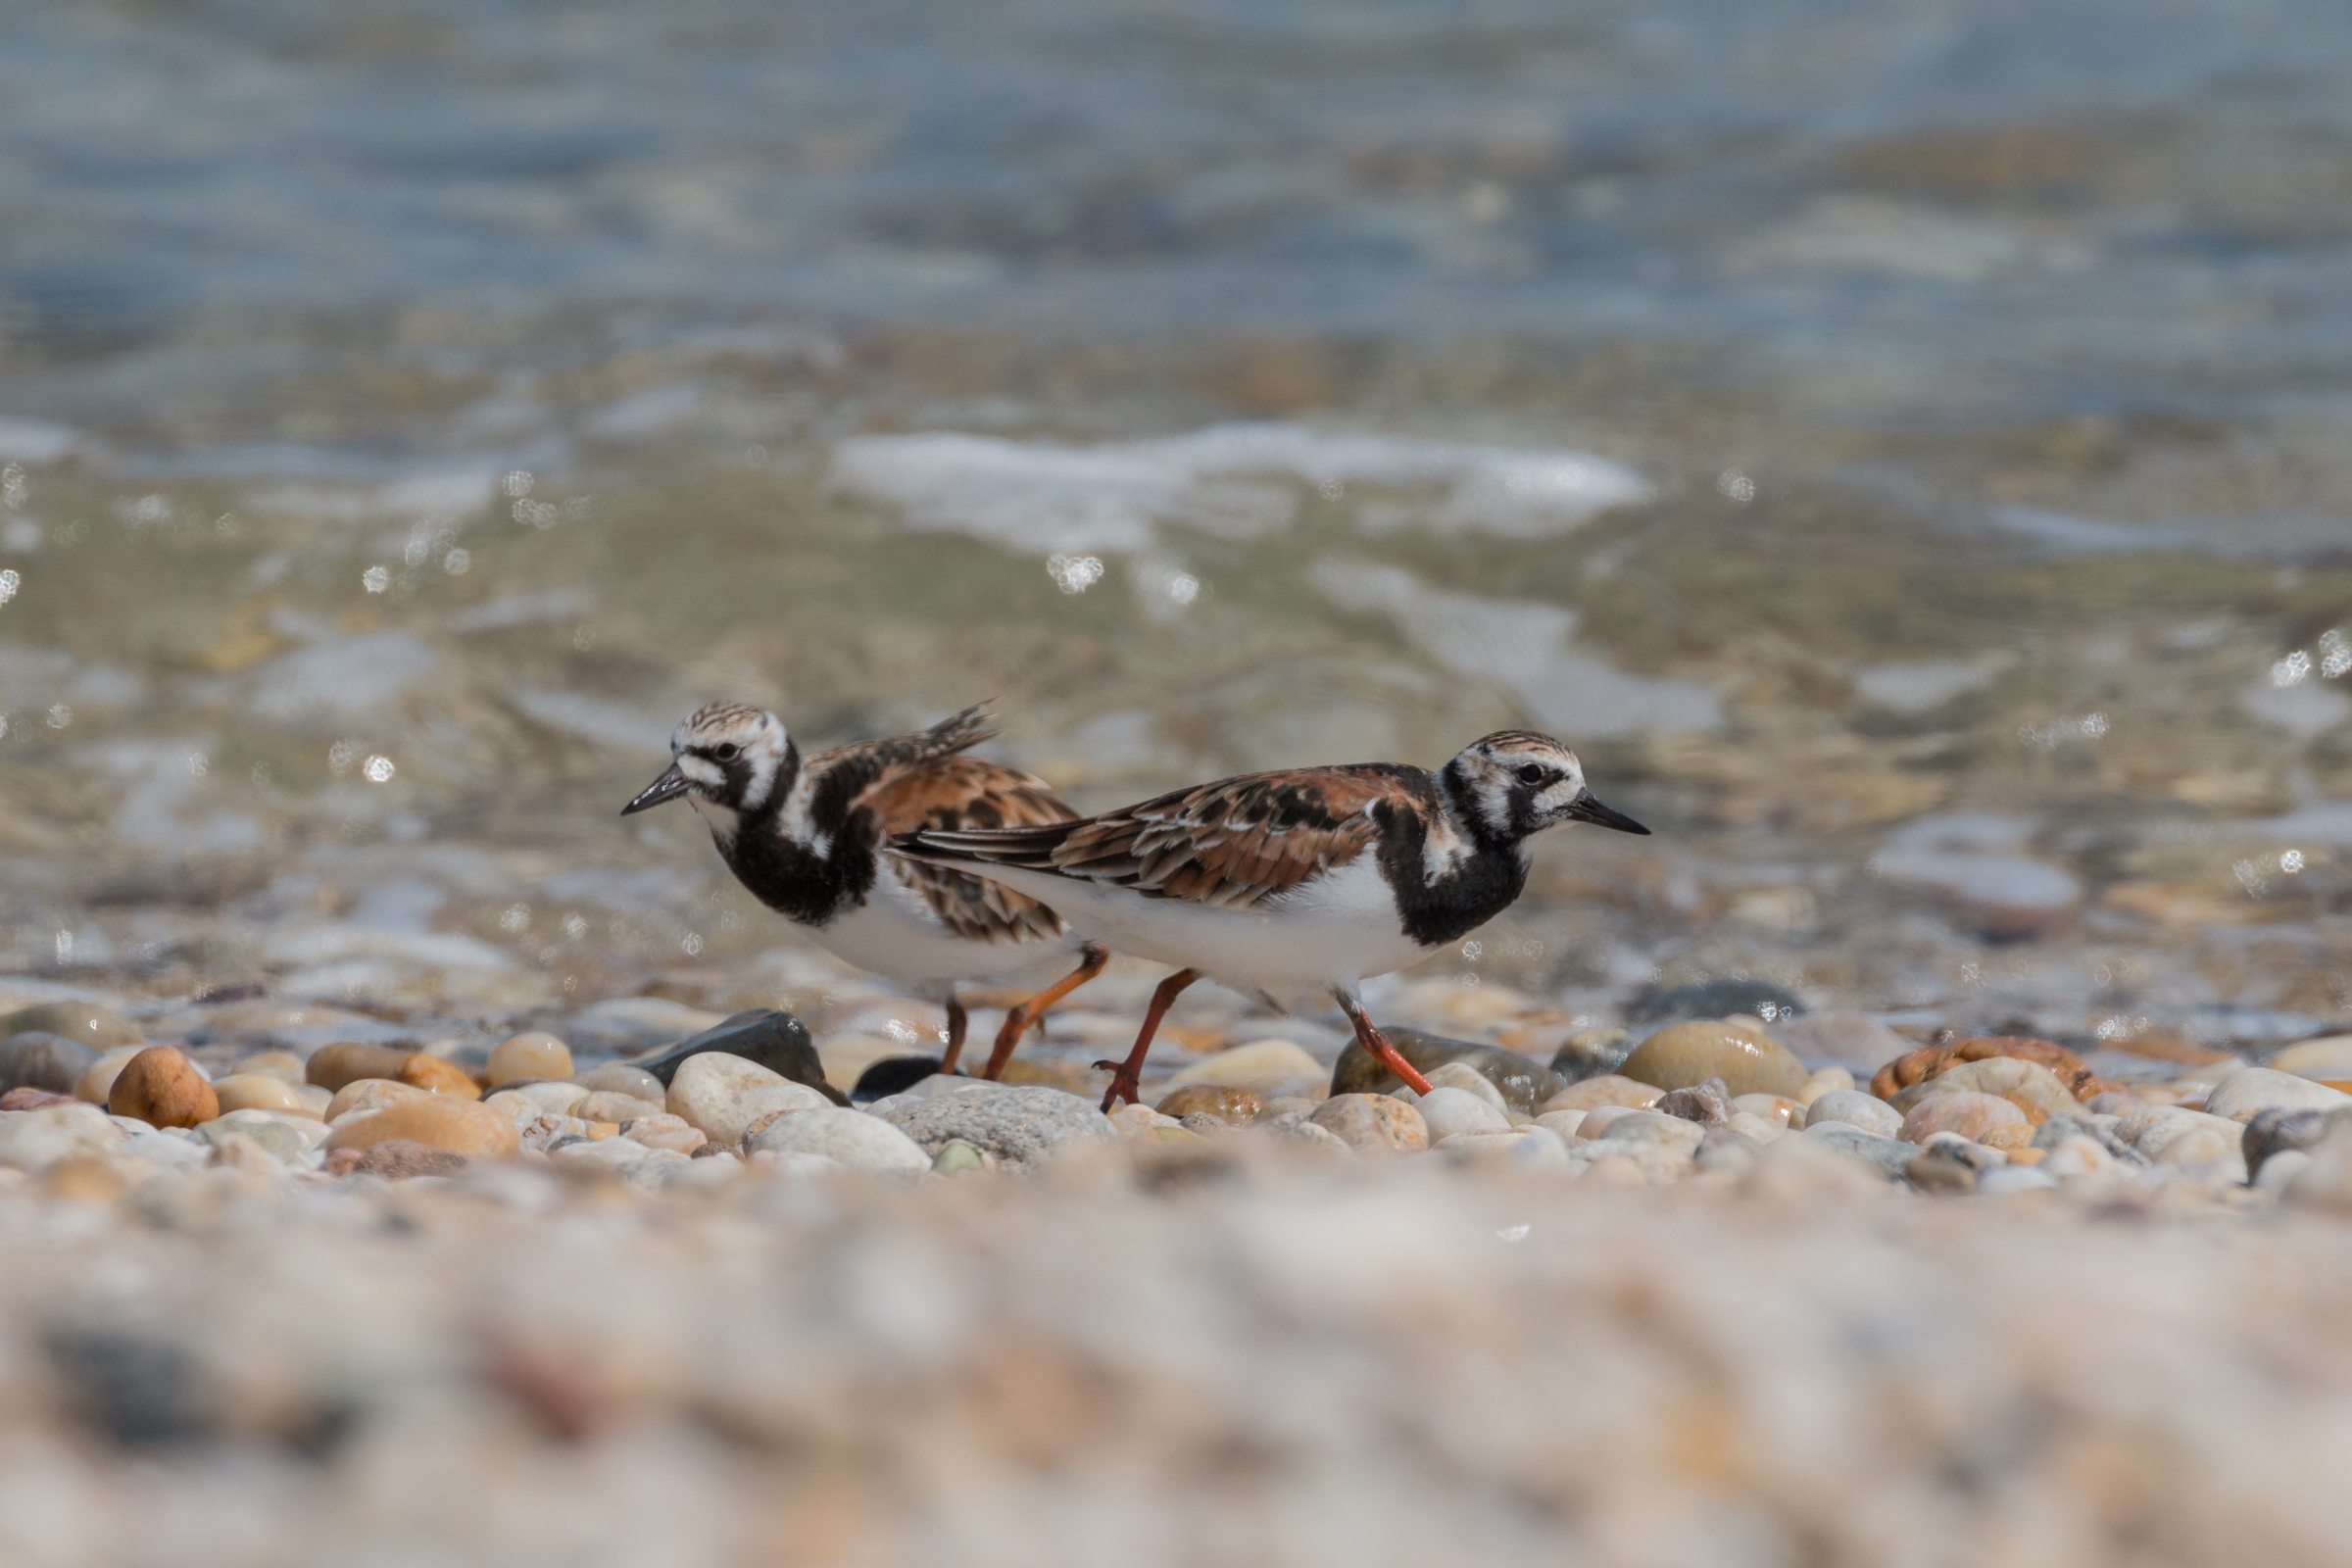 Two birds with mottled black, white, and rust-colored plumage stand on a rocky beach near water.